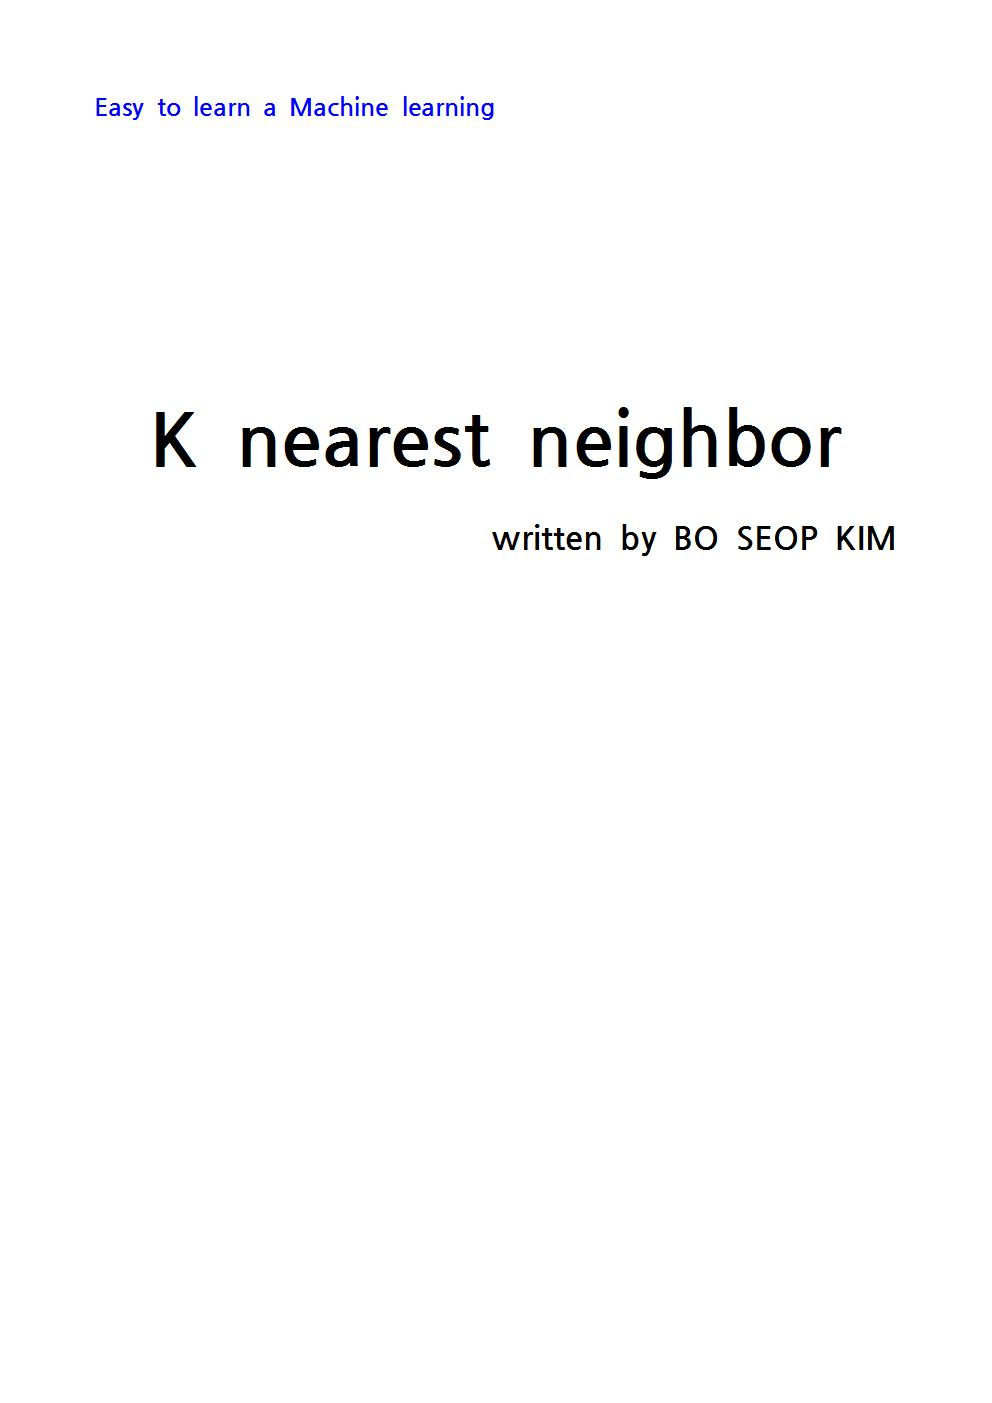 K nearest neighbor001.jpg